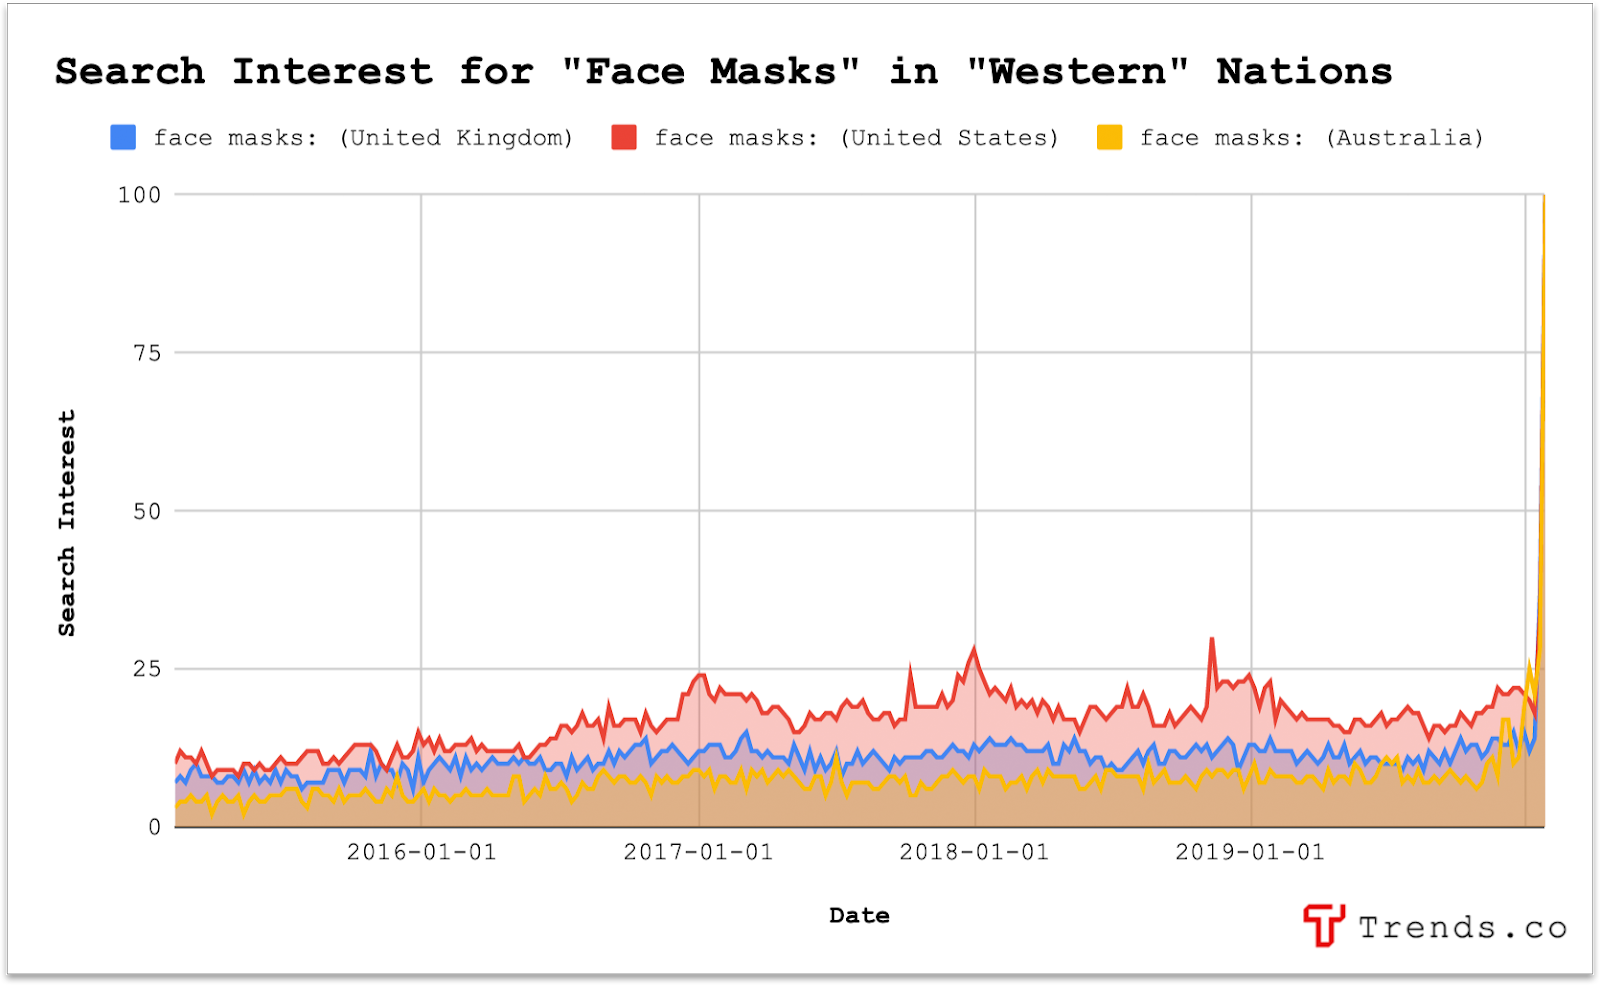 The search interest for face masks in western nations.